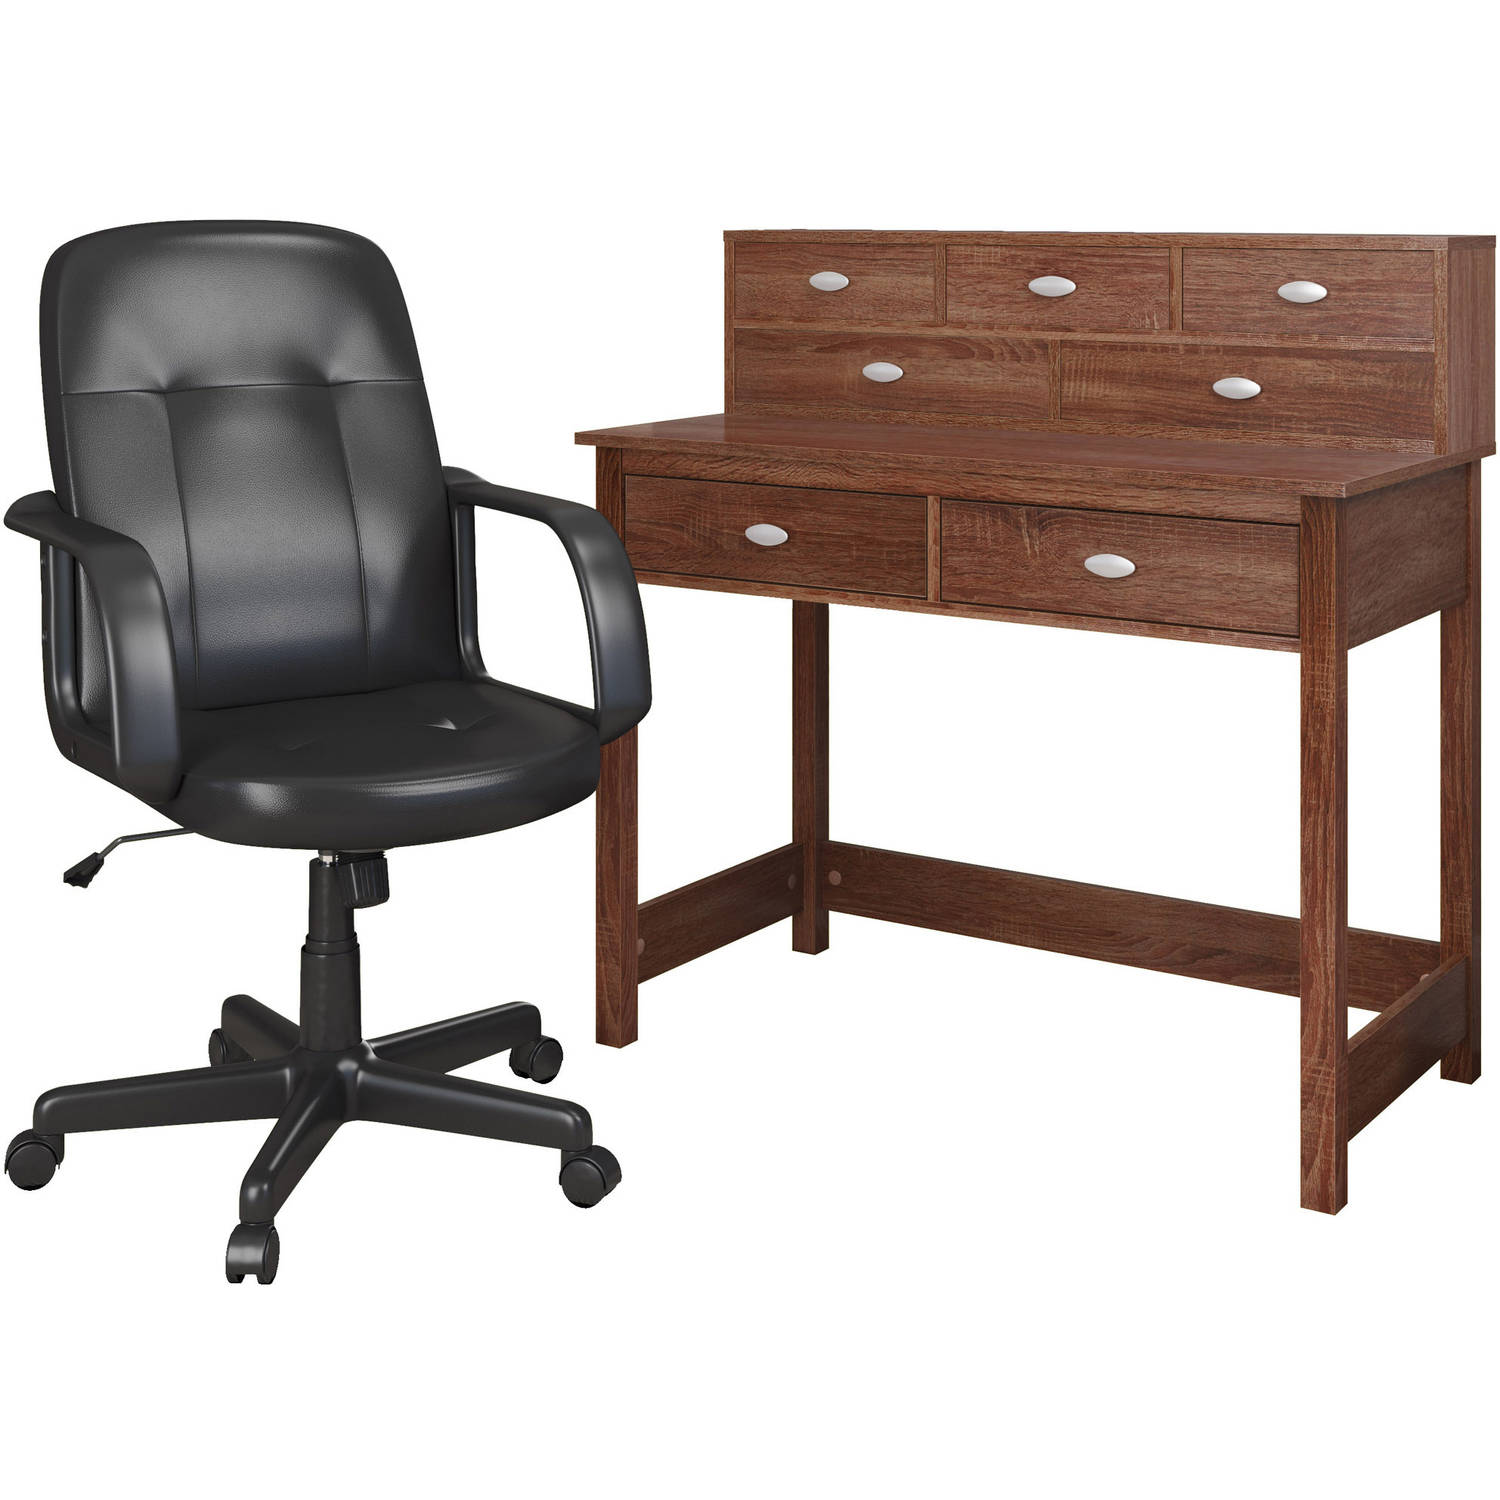 CorLiving Folio 2pc Desk with Storage Hutch and Office Chair Set